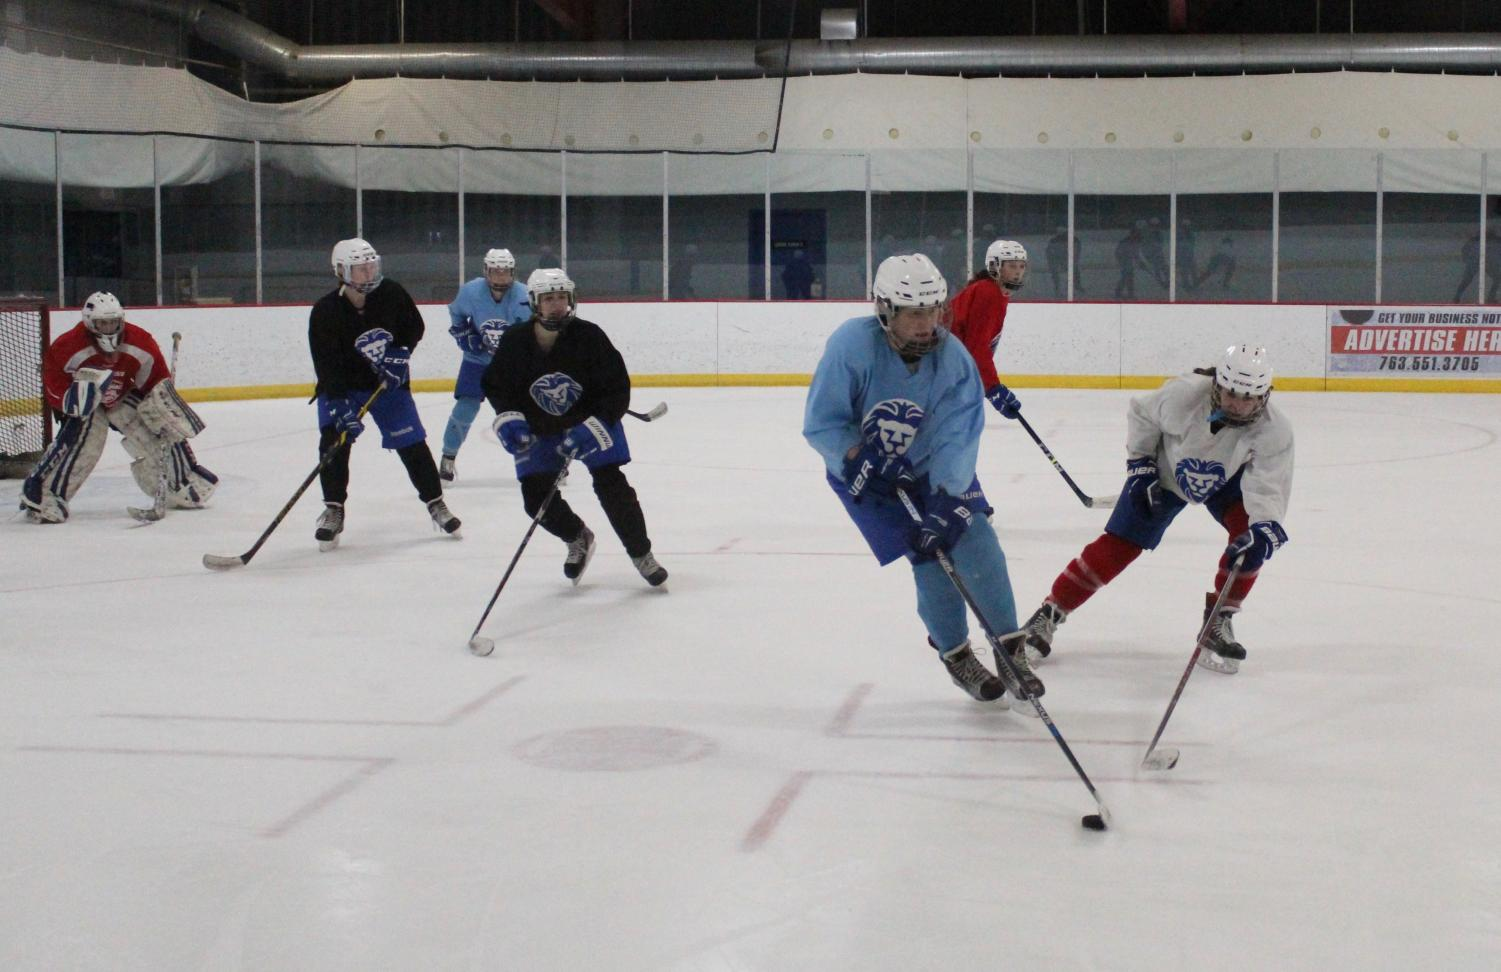 Freshman Erin Brousseau, in the white jersey, forechecks against Mary Gleason in the team's practice Feb 8.